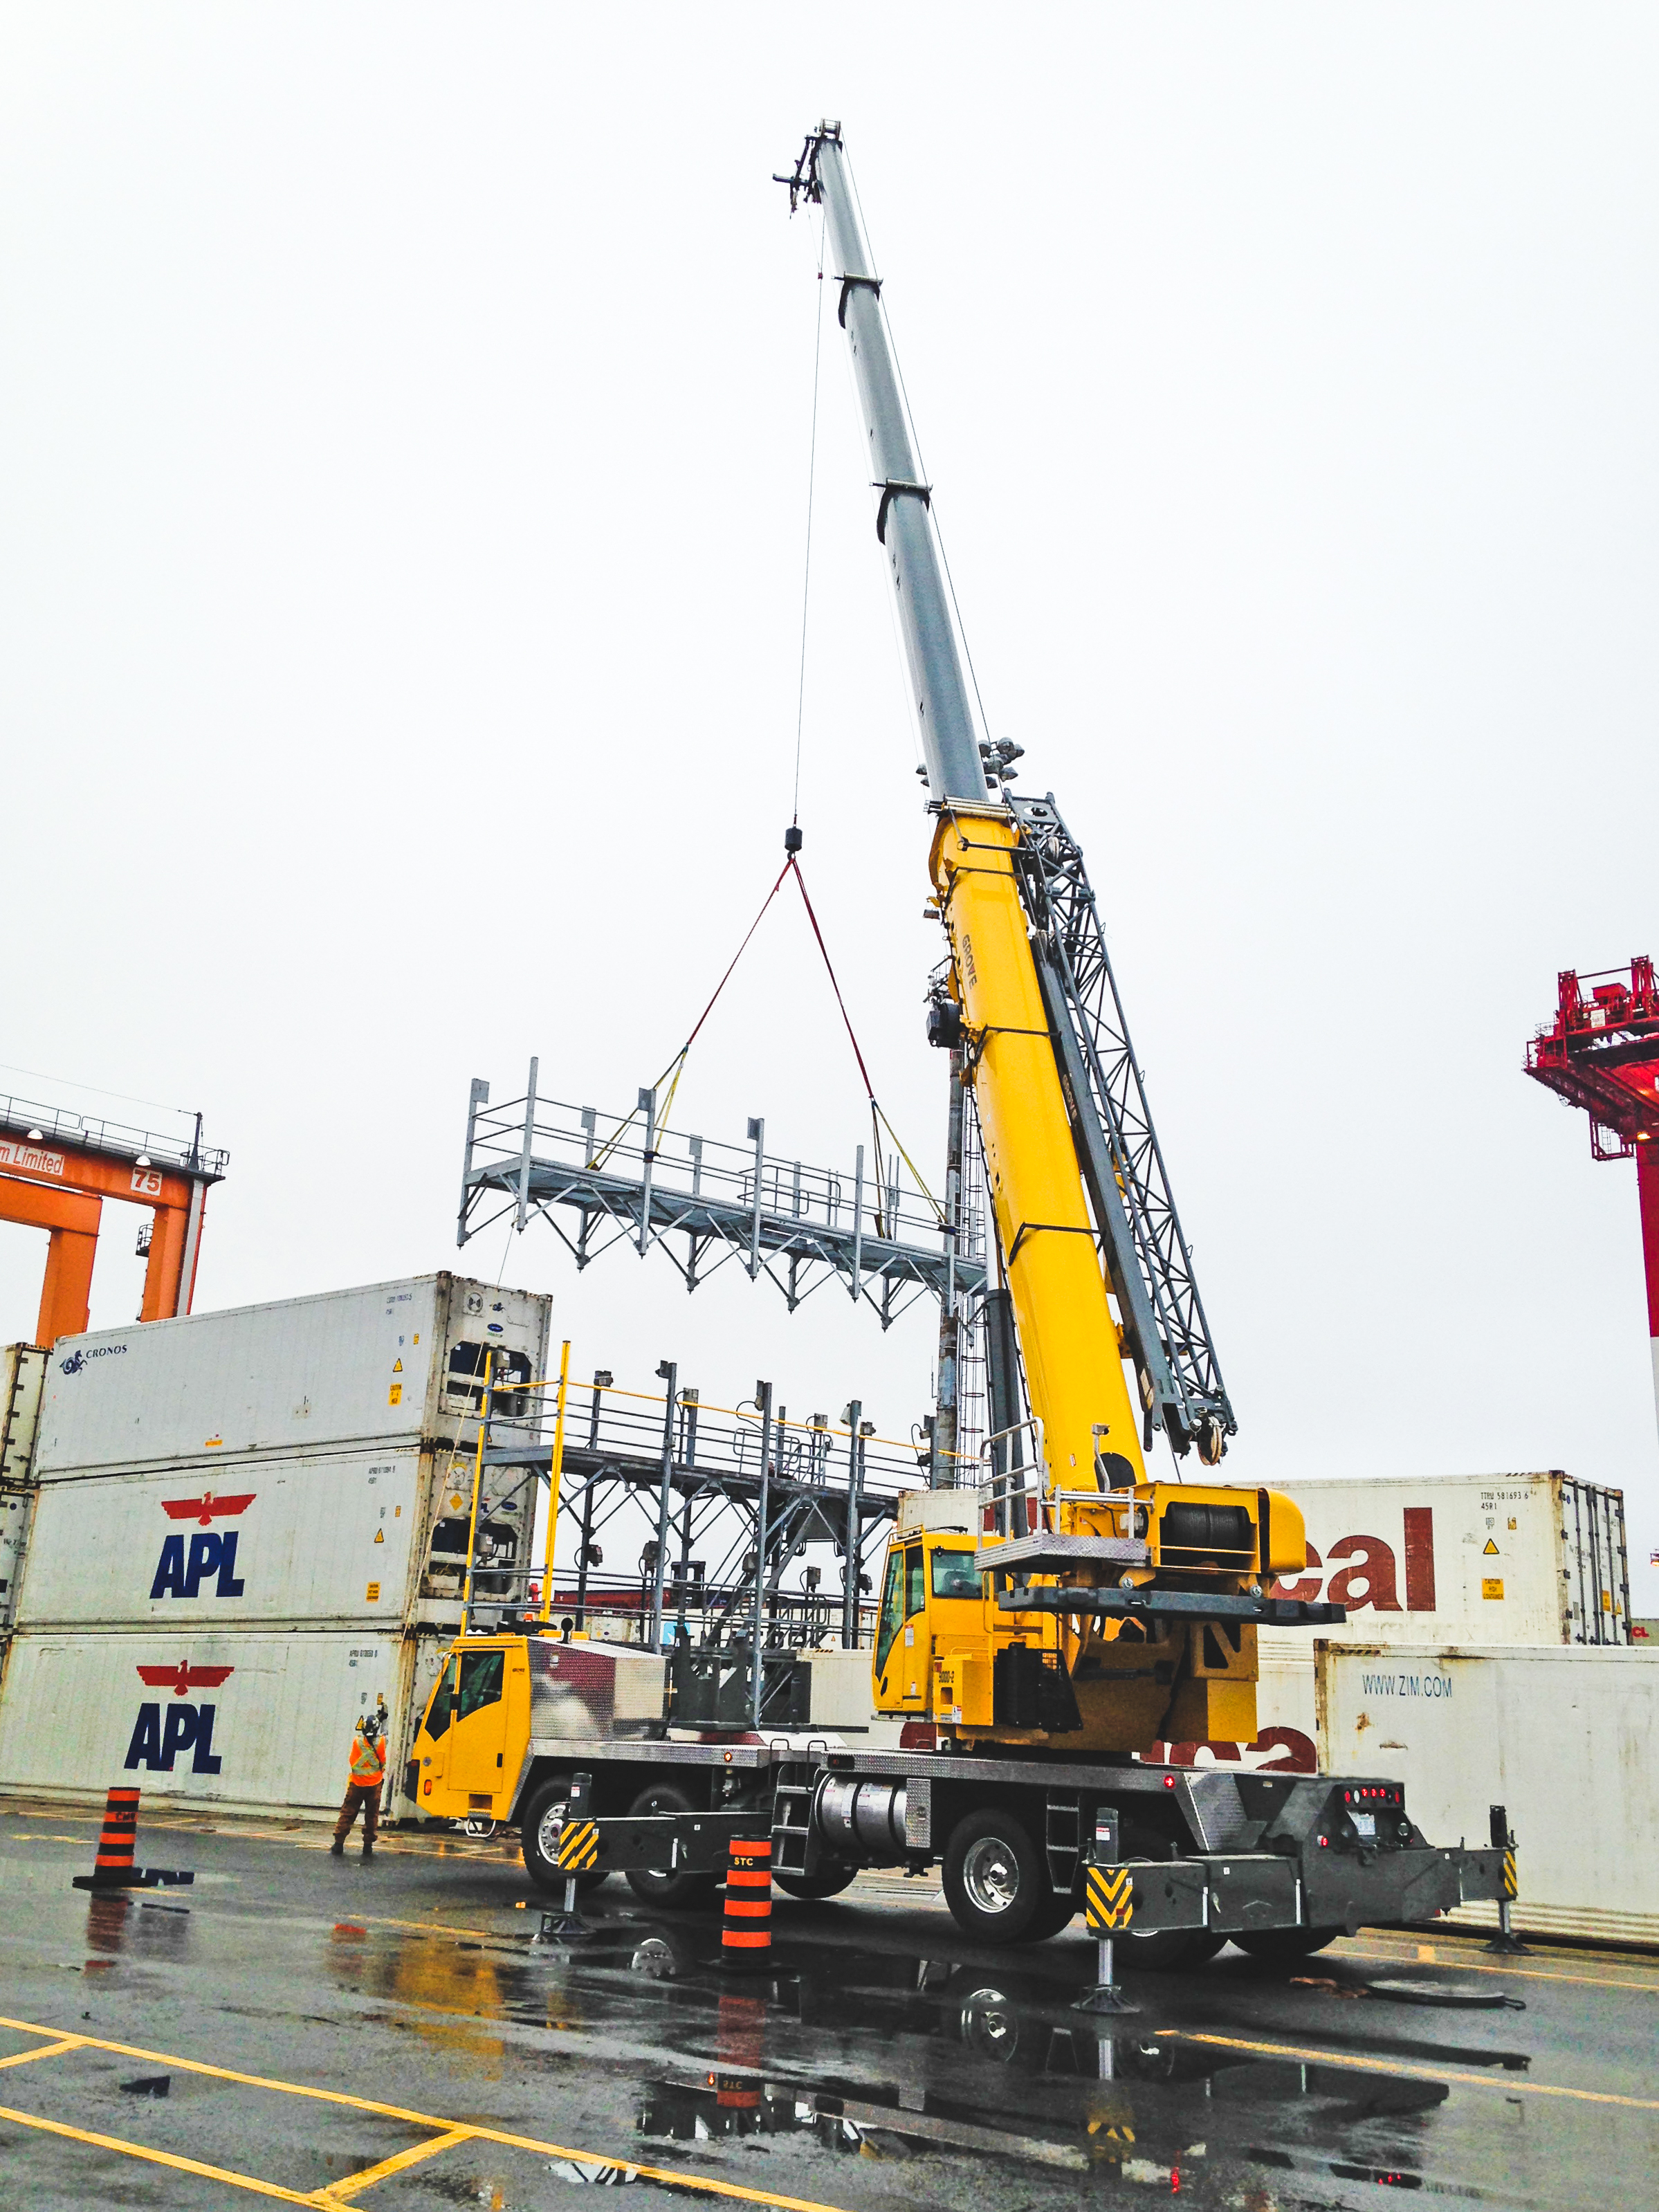 When Manitowoc introduced the Grove TMS9000-2 in February of 2017, it also revealed the mantra behind the crane's design: lighter, longer, stronger. It was these very same attributes that led R&D Crane Rental (R&D) to be the first company in Canada to take delivery of the new-model truck crane.